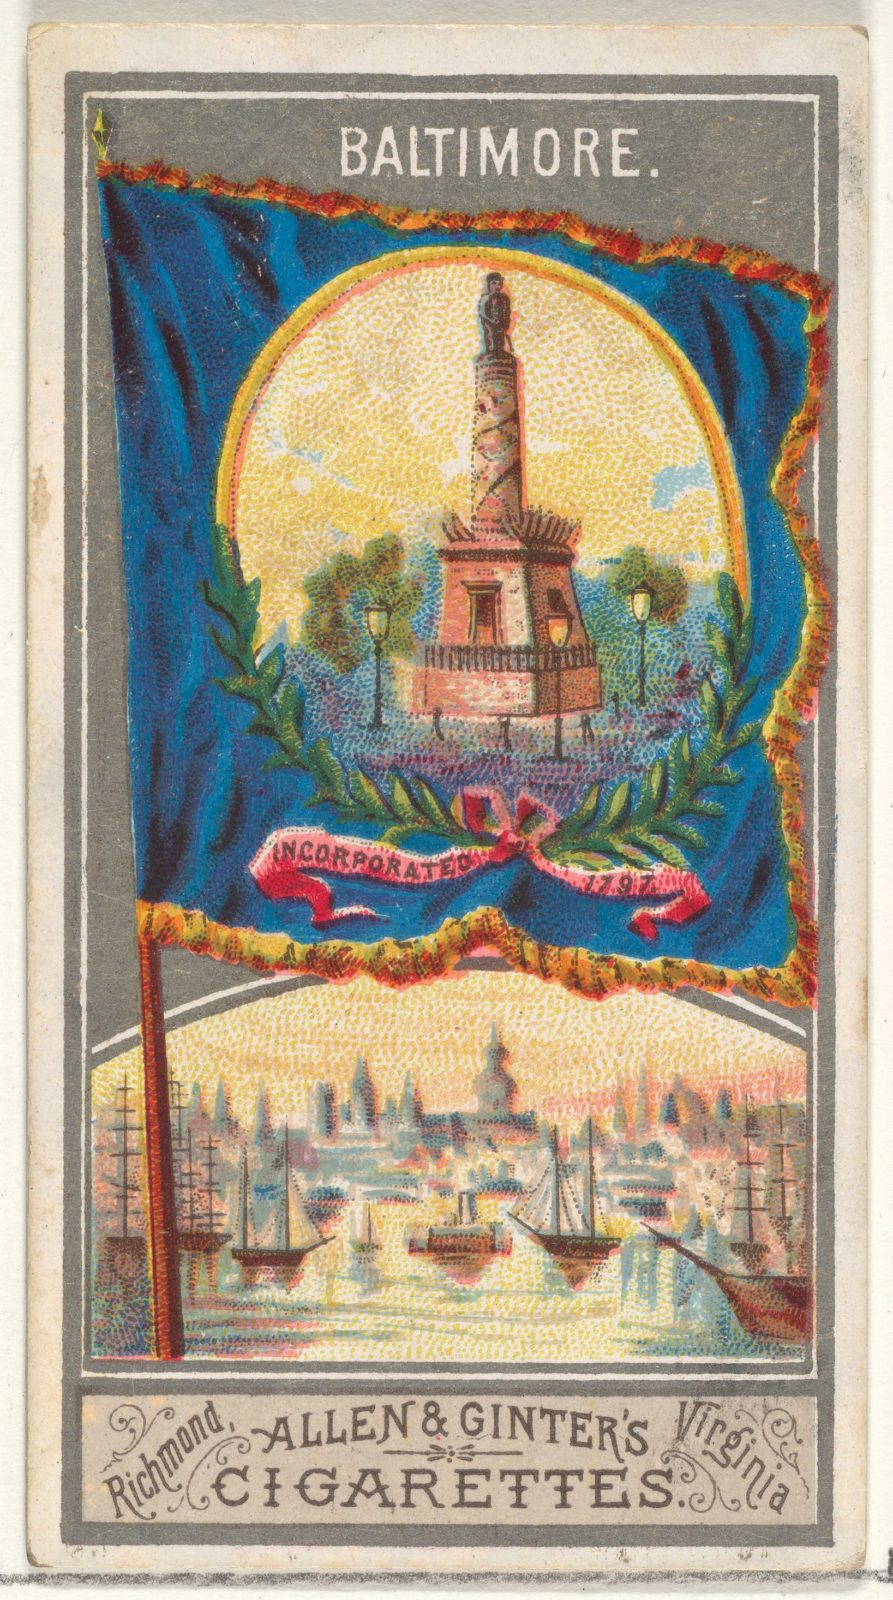 Baltimore, from the City Flags series (N6) for Allen & Ginter Cigarettes Brands